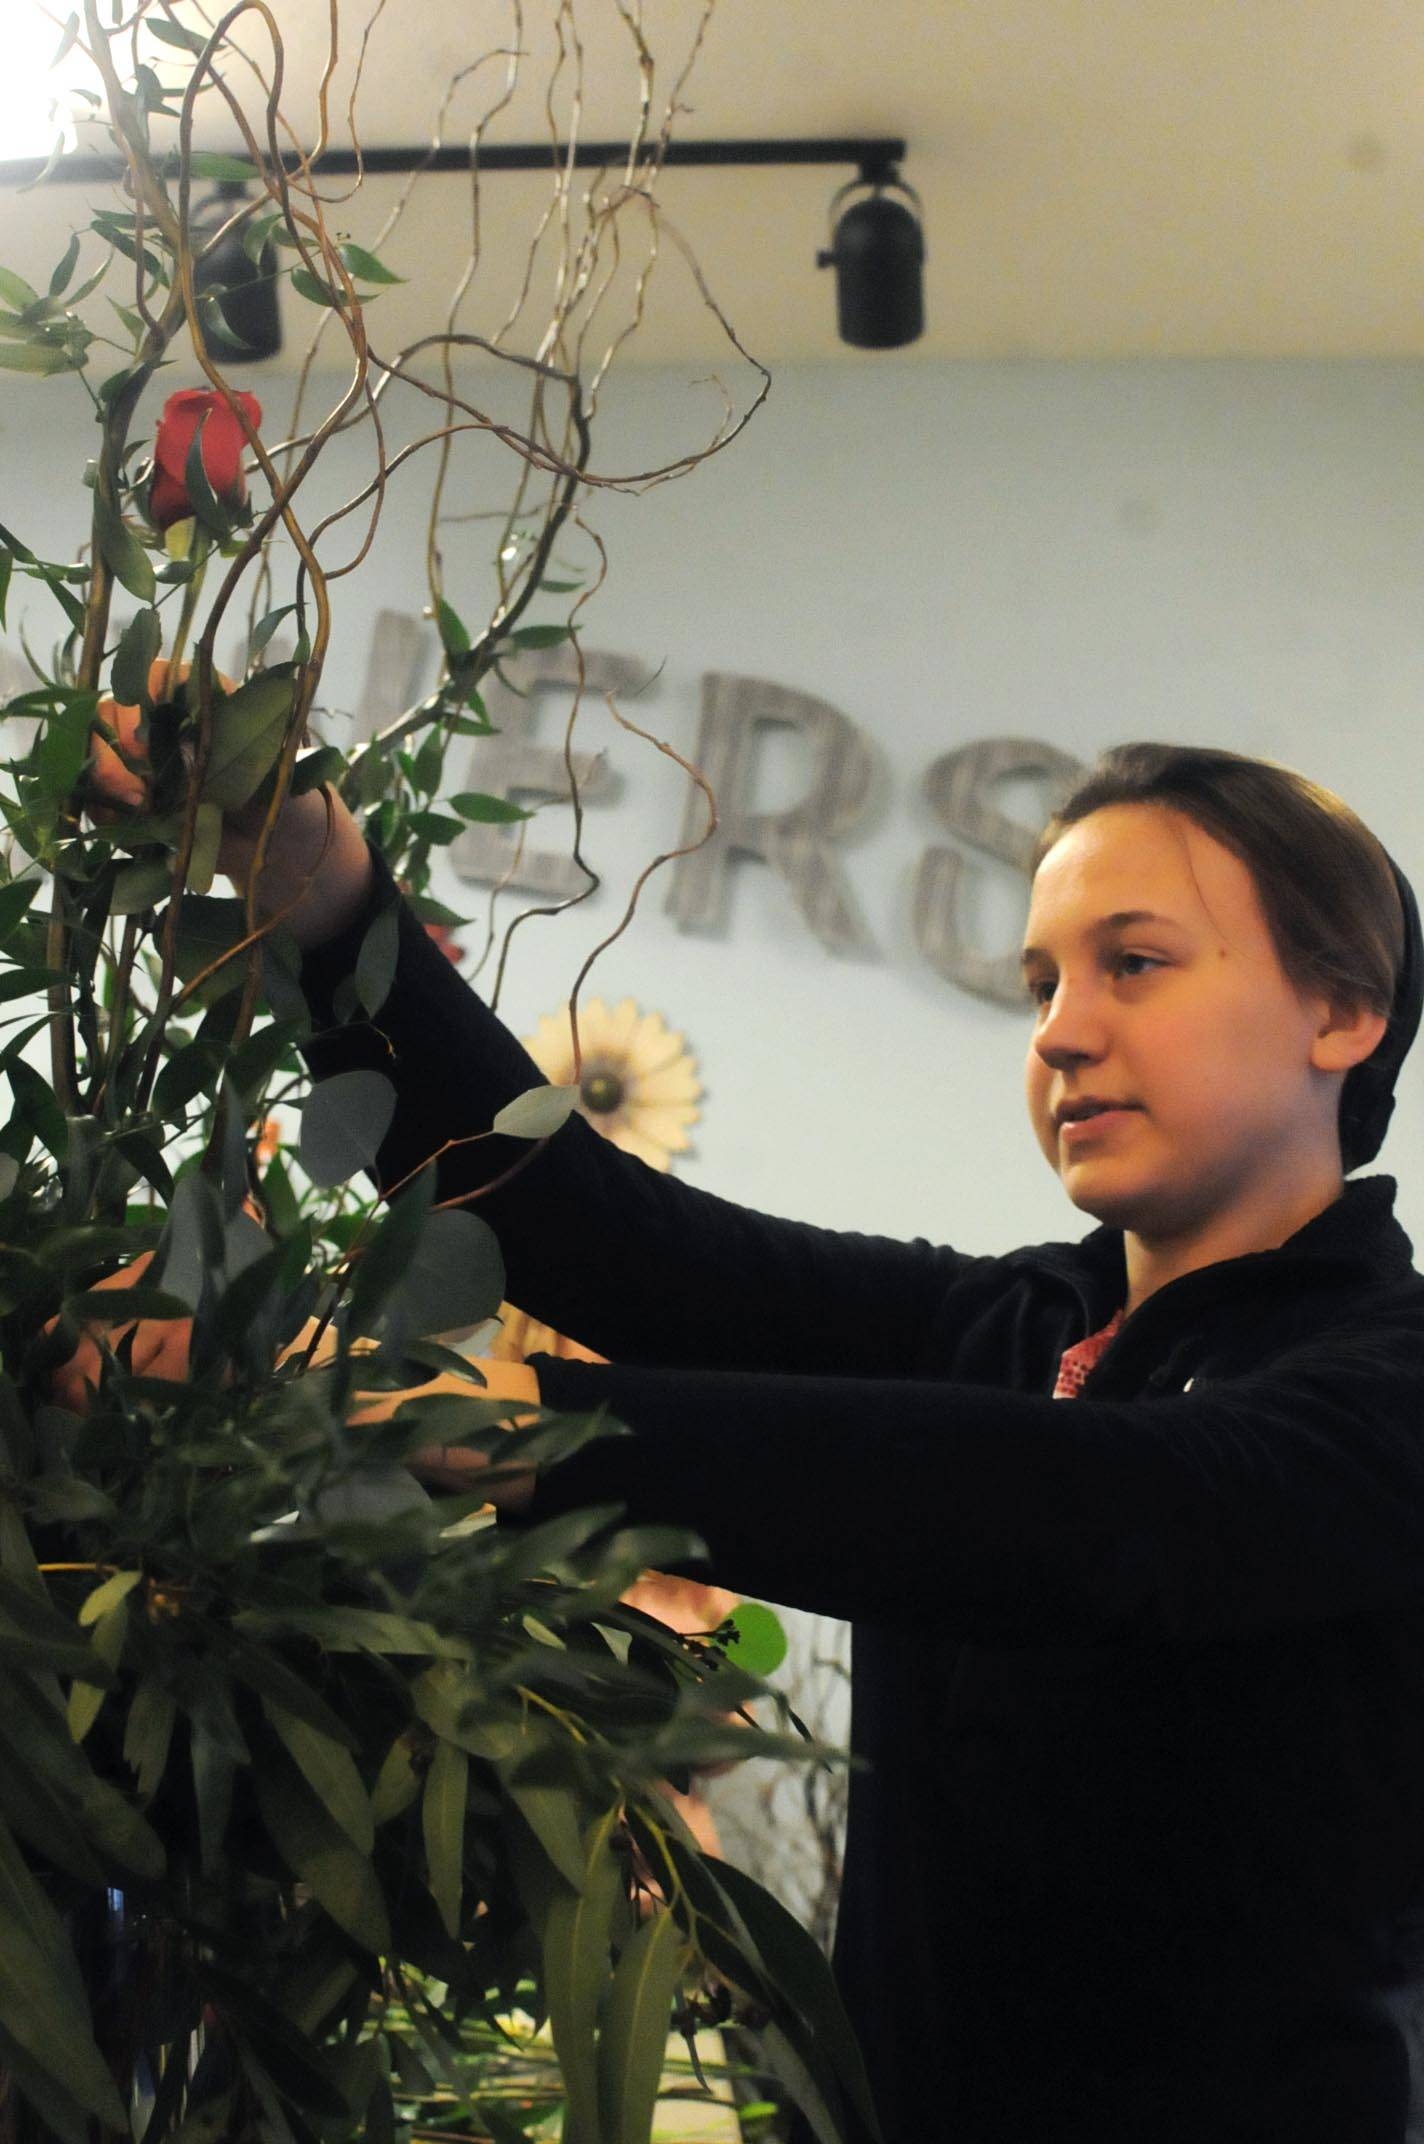 Kate's Flowers and Gifts florist Kate Mastres arranges a bouquet at the shop on Wednesday, Feb. 14, 2018 in Soldotna, Alaska. Wednesday was a busy day for the shop, with the Valentine's Day holiday. Mastres said she had been at the shop until 3:30 a.m. Wednesday morning preparing for the next day and arrived at 10 a.m. The shop does custom bouquets as well as some pre-designed ones, she said. (Photo by Elizabeth Earl/Peninsula Clarion)